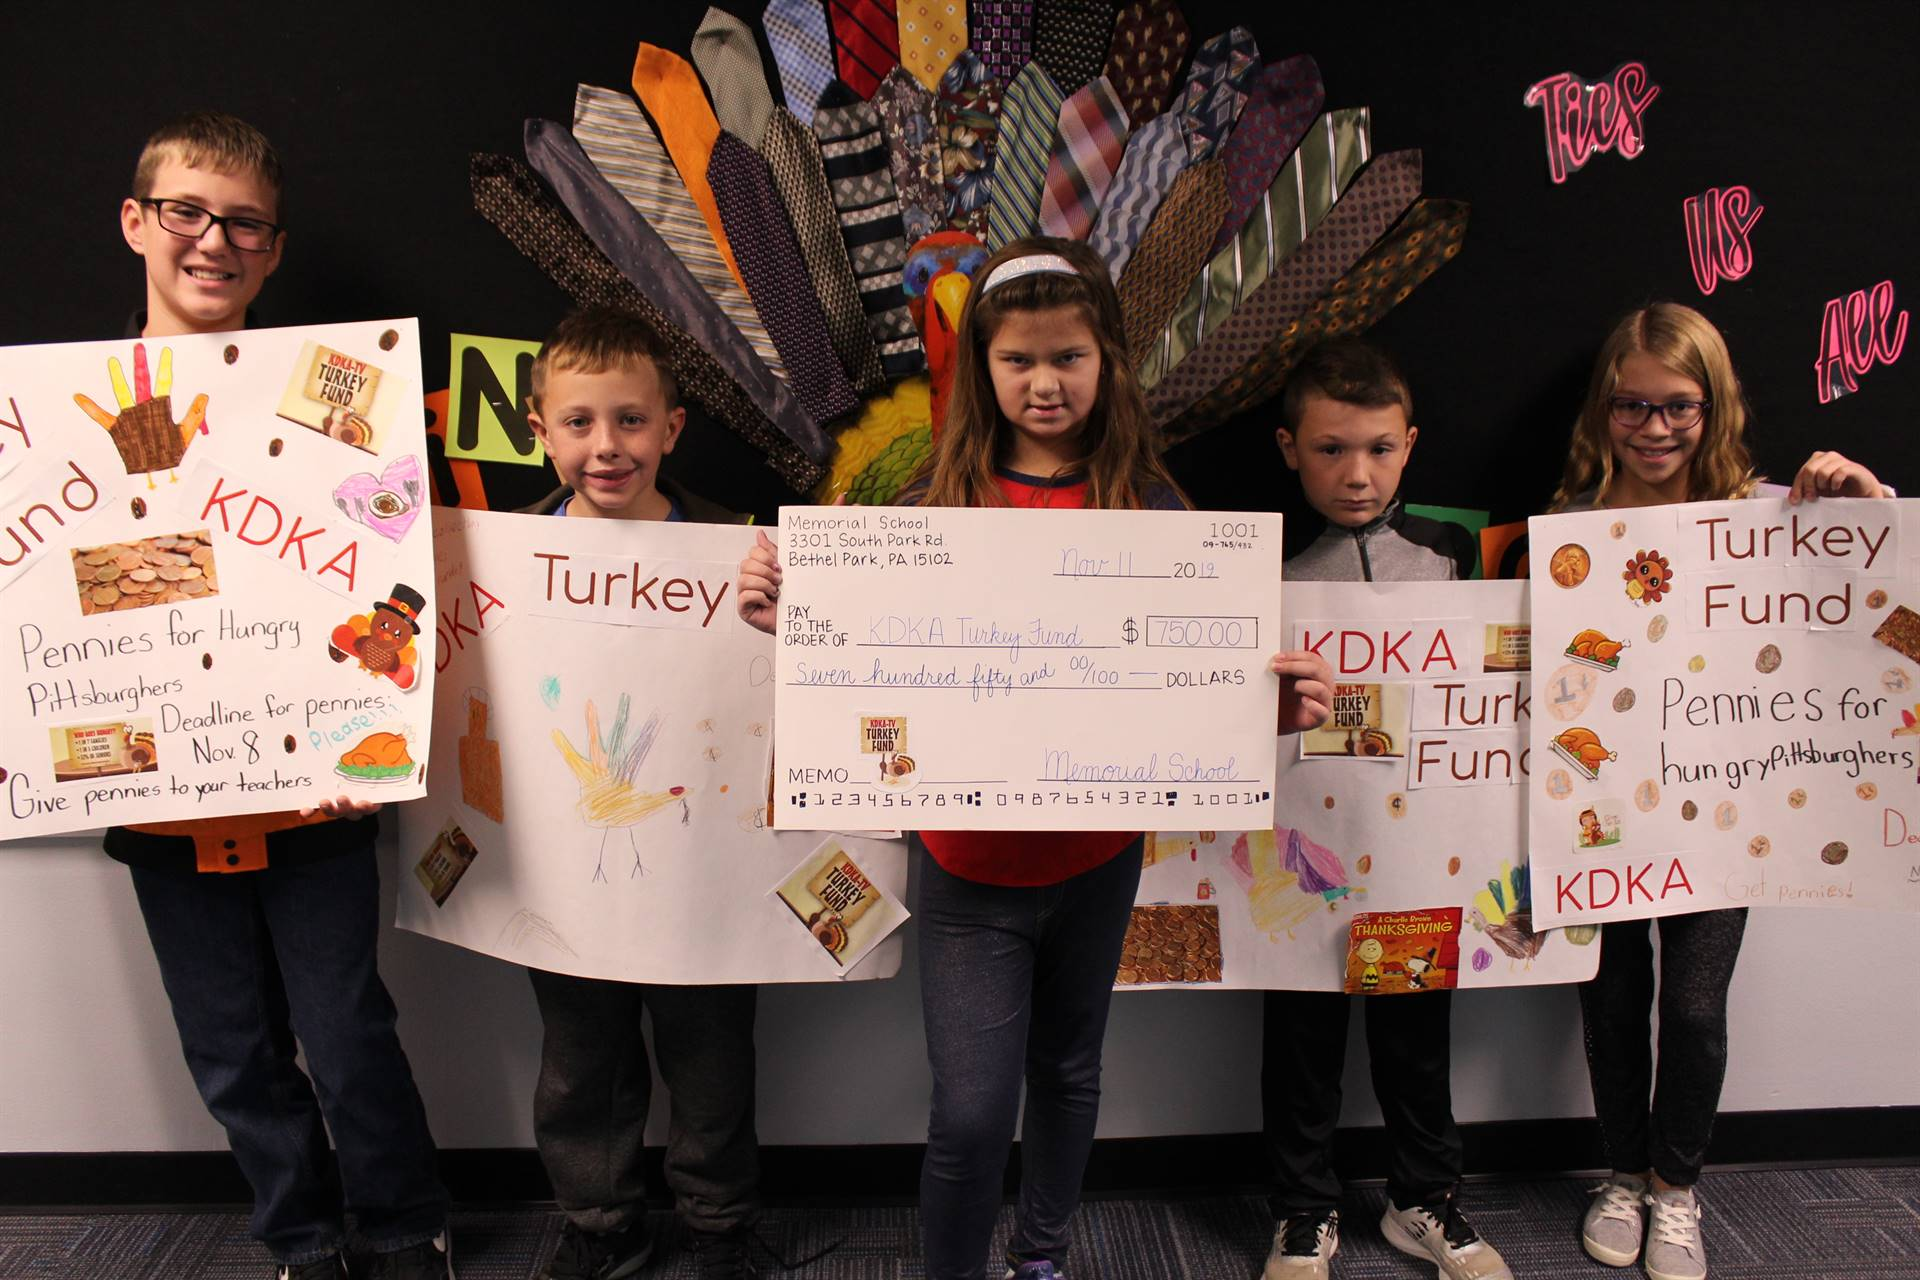 Five students holding the check and posters for the Turkey Fund